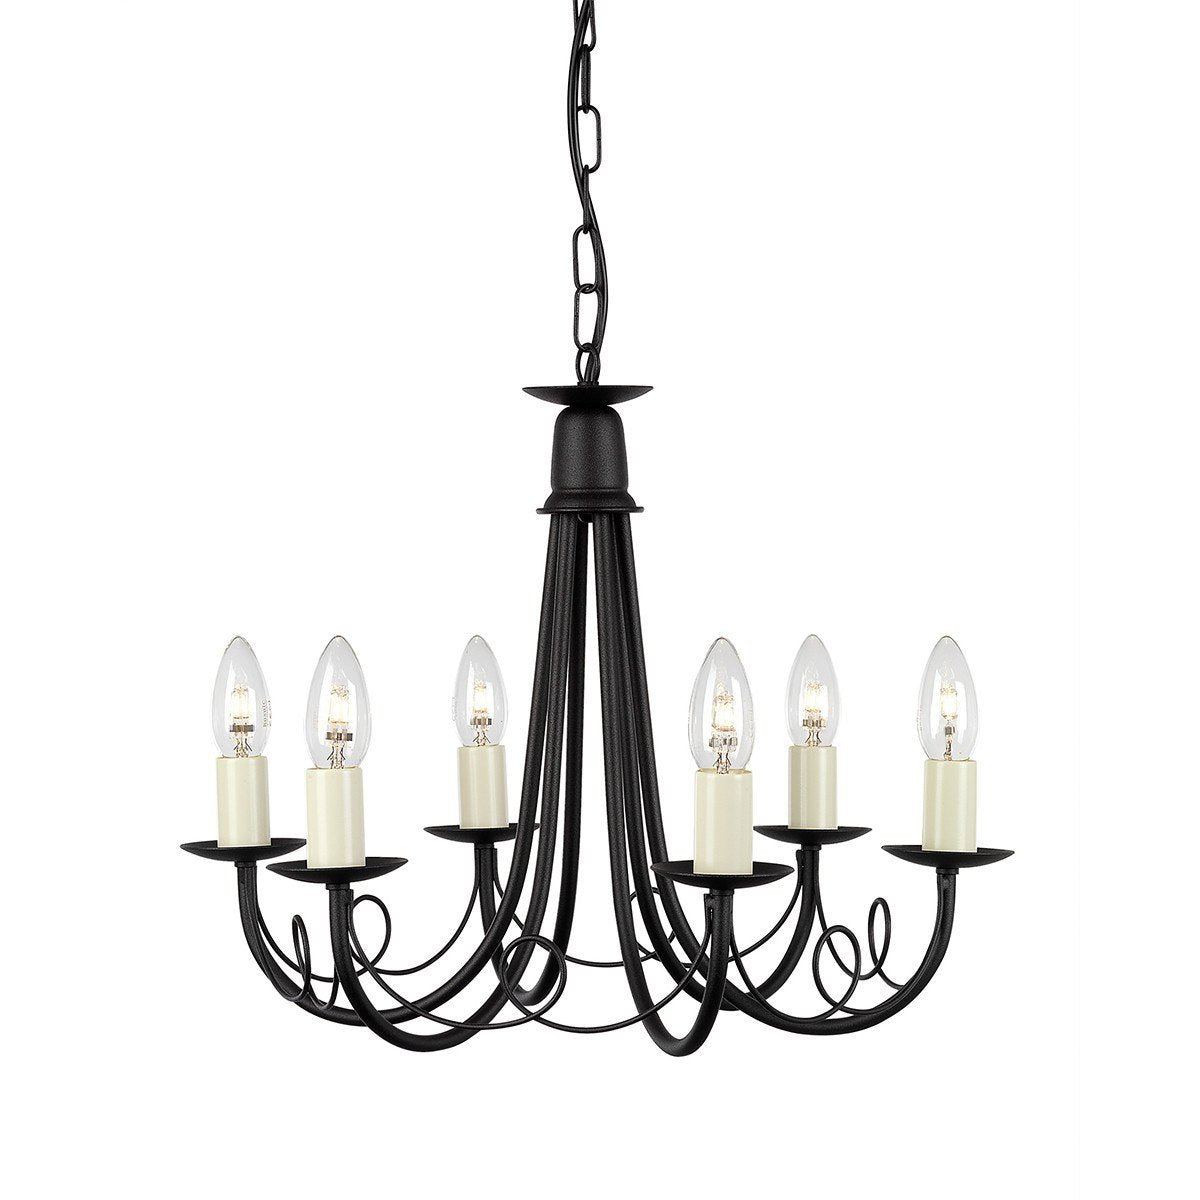 Minster 6 Arm Chandelier - London Lighting - 1